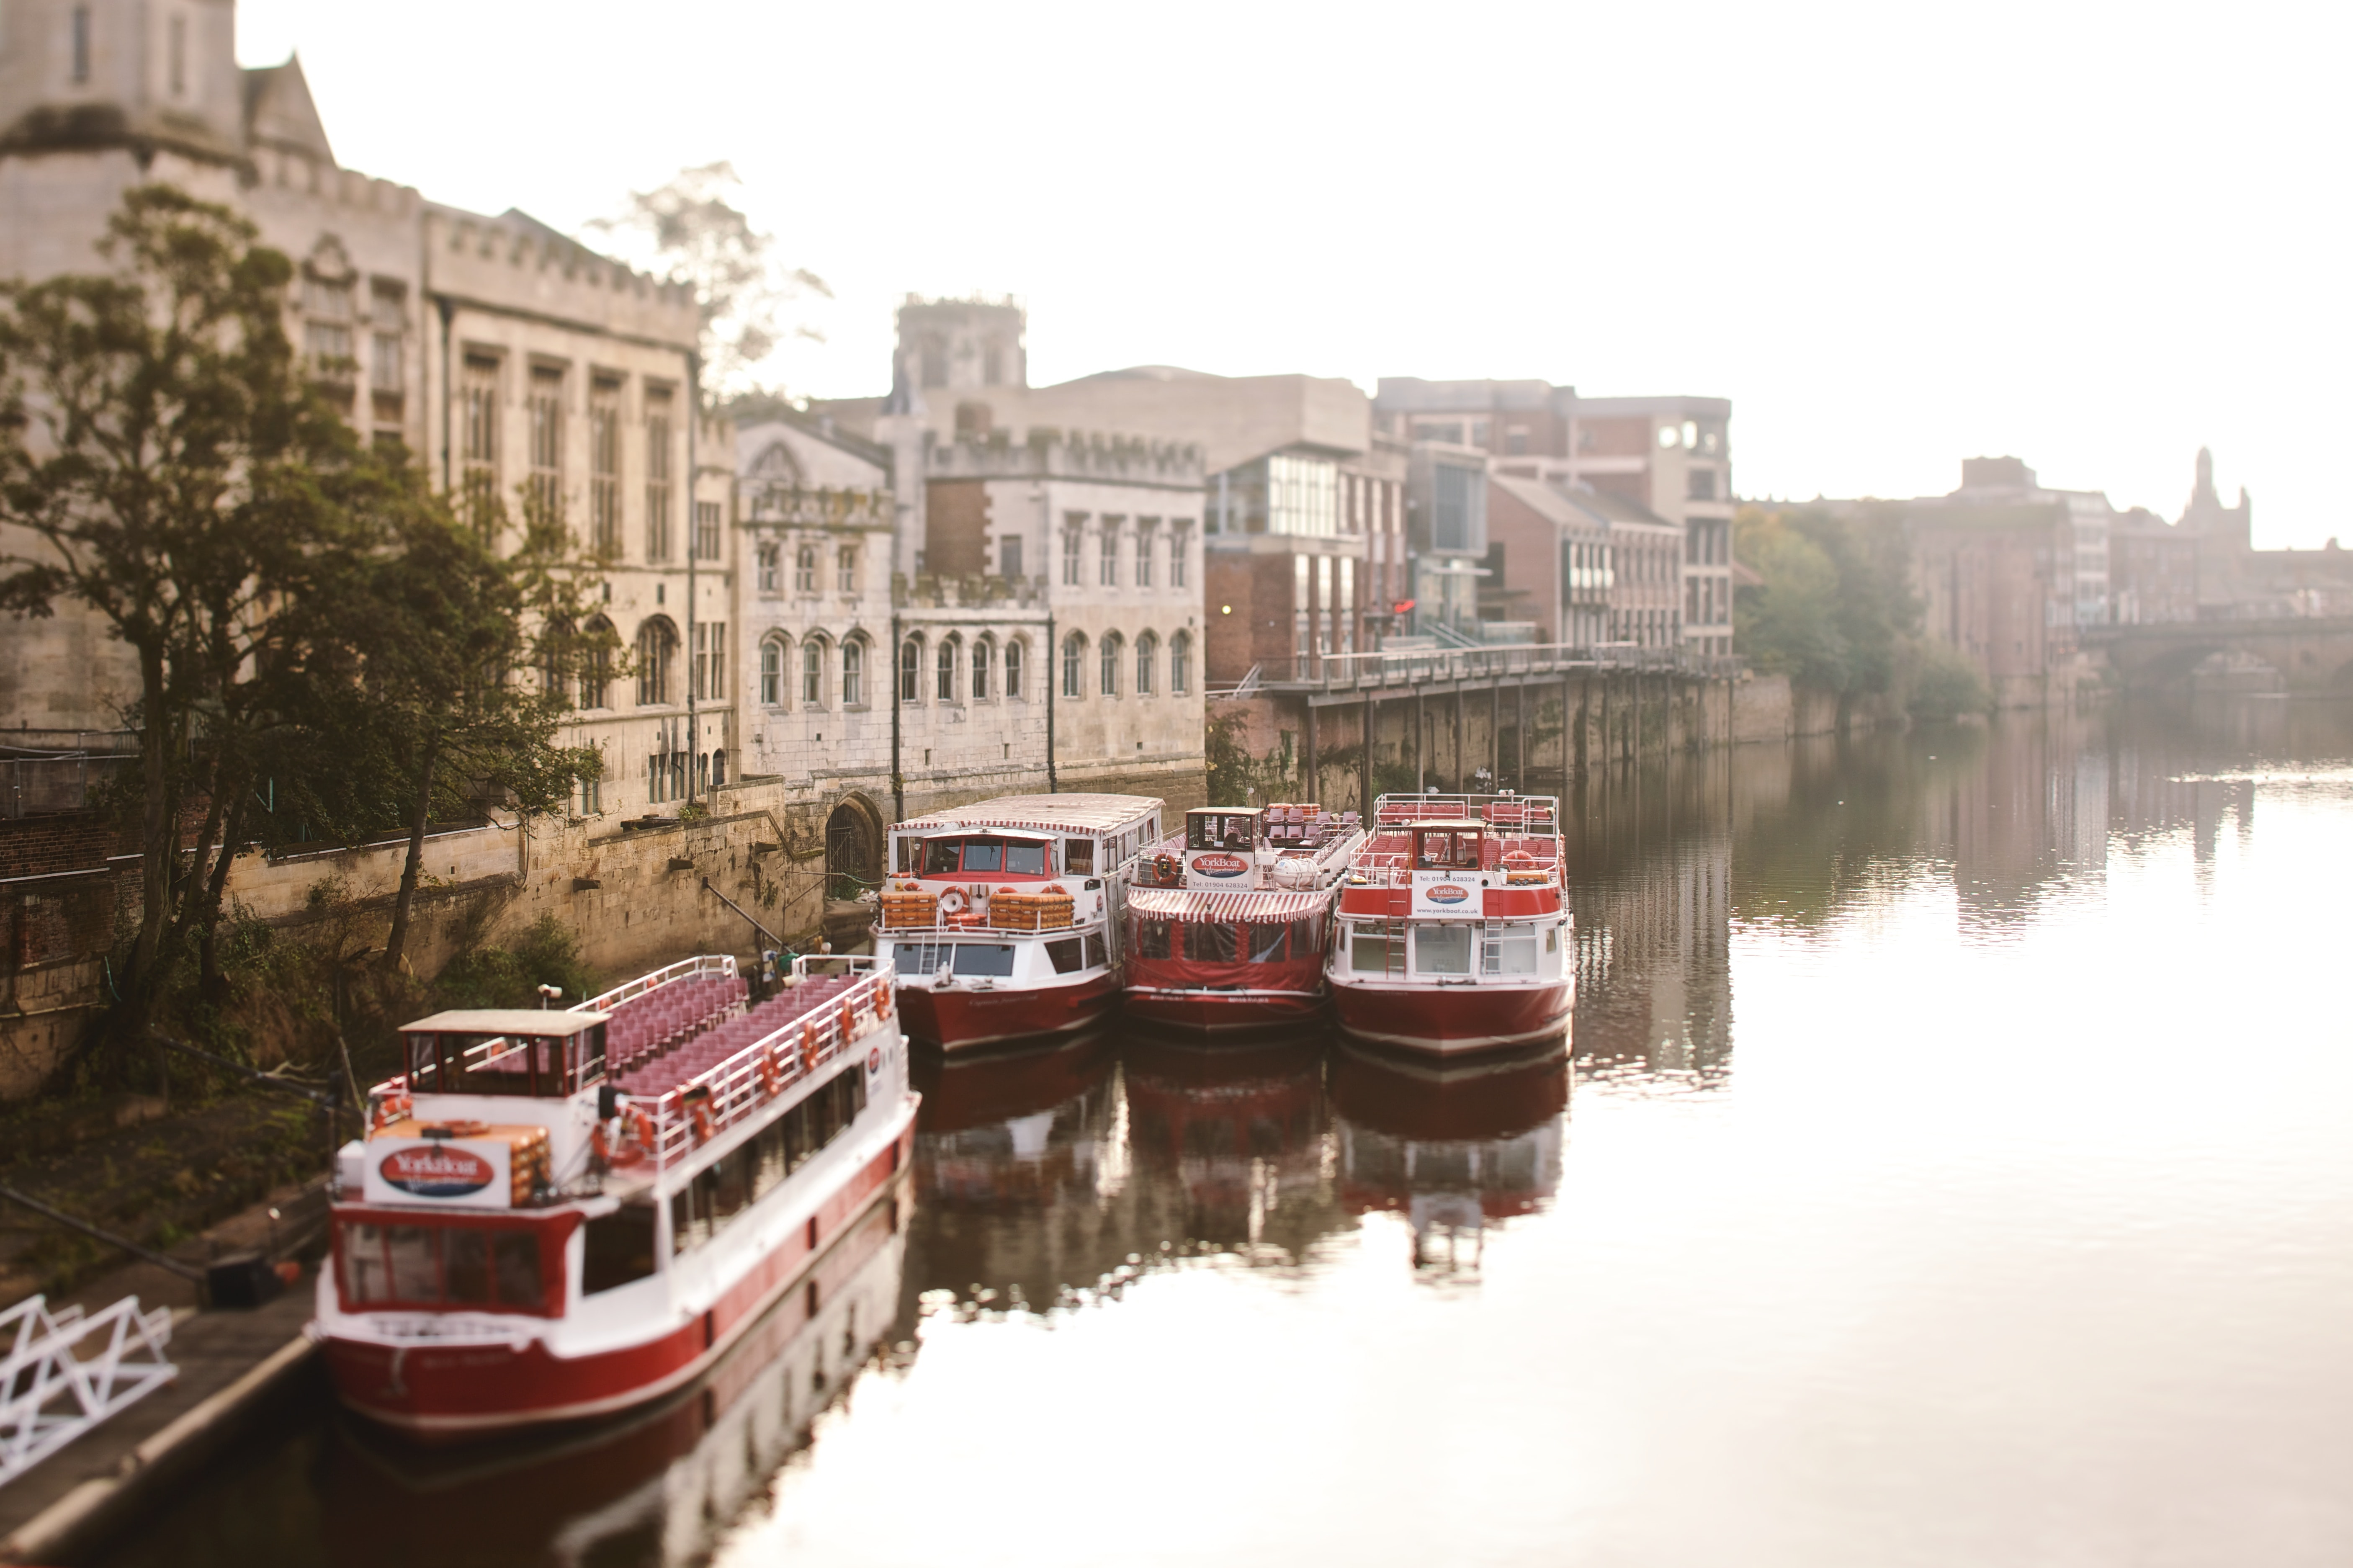 Double decker boats docked along the river in historic York